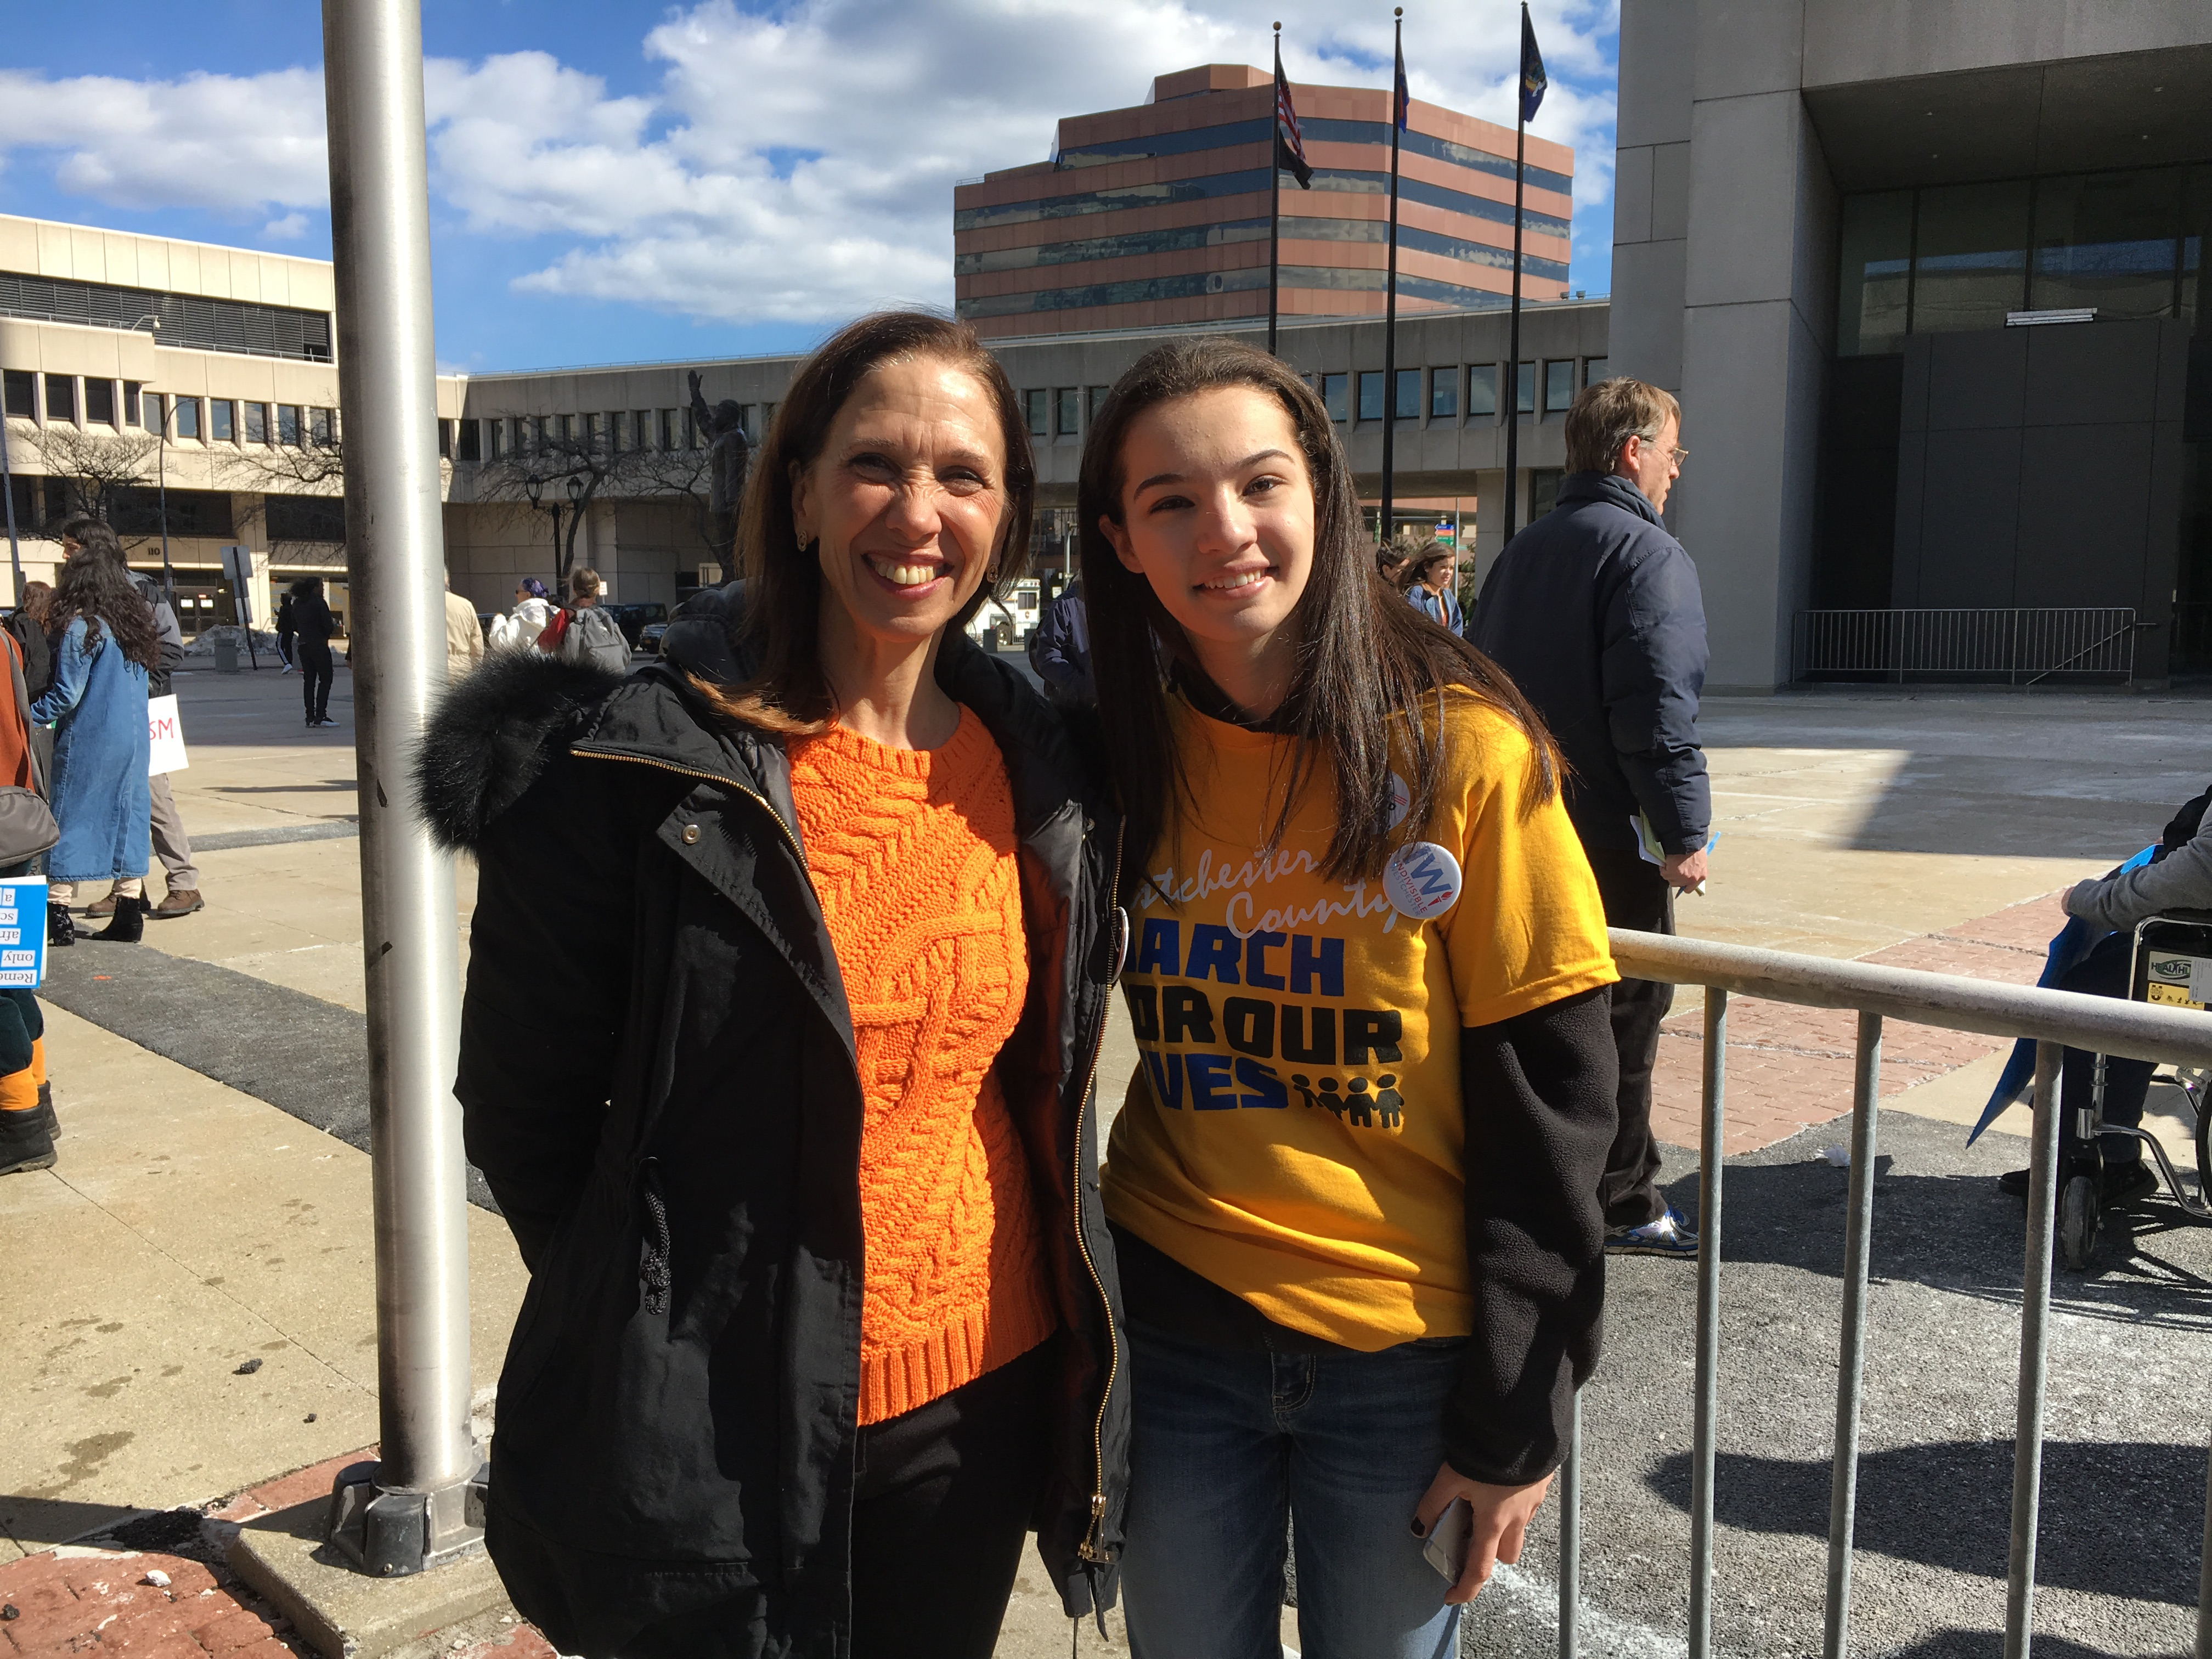 Assemblymember Amy Paulin with White Plains High School student Kelly Marx at the conclusion of the Westchester March for Our Lives in White Plains on March 24, 2018.  Kelly was one of the lead organi